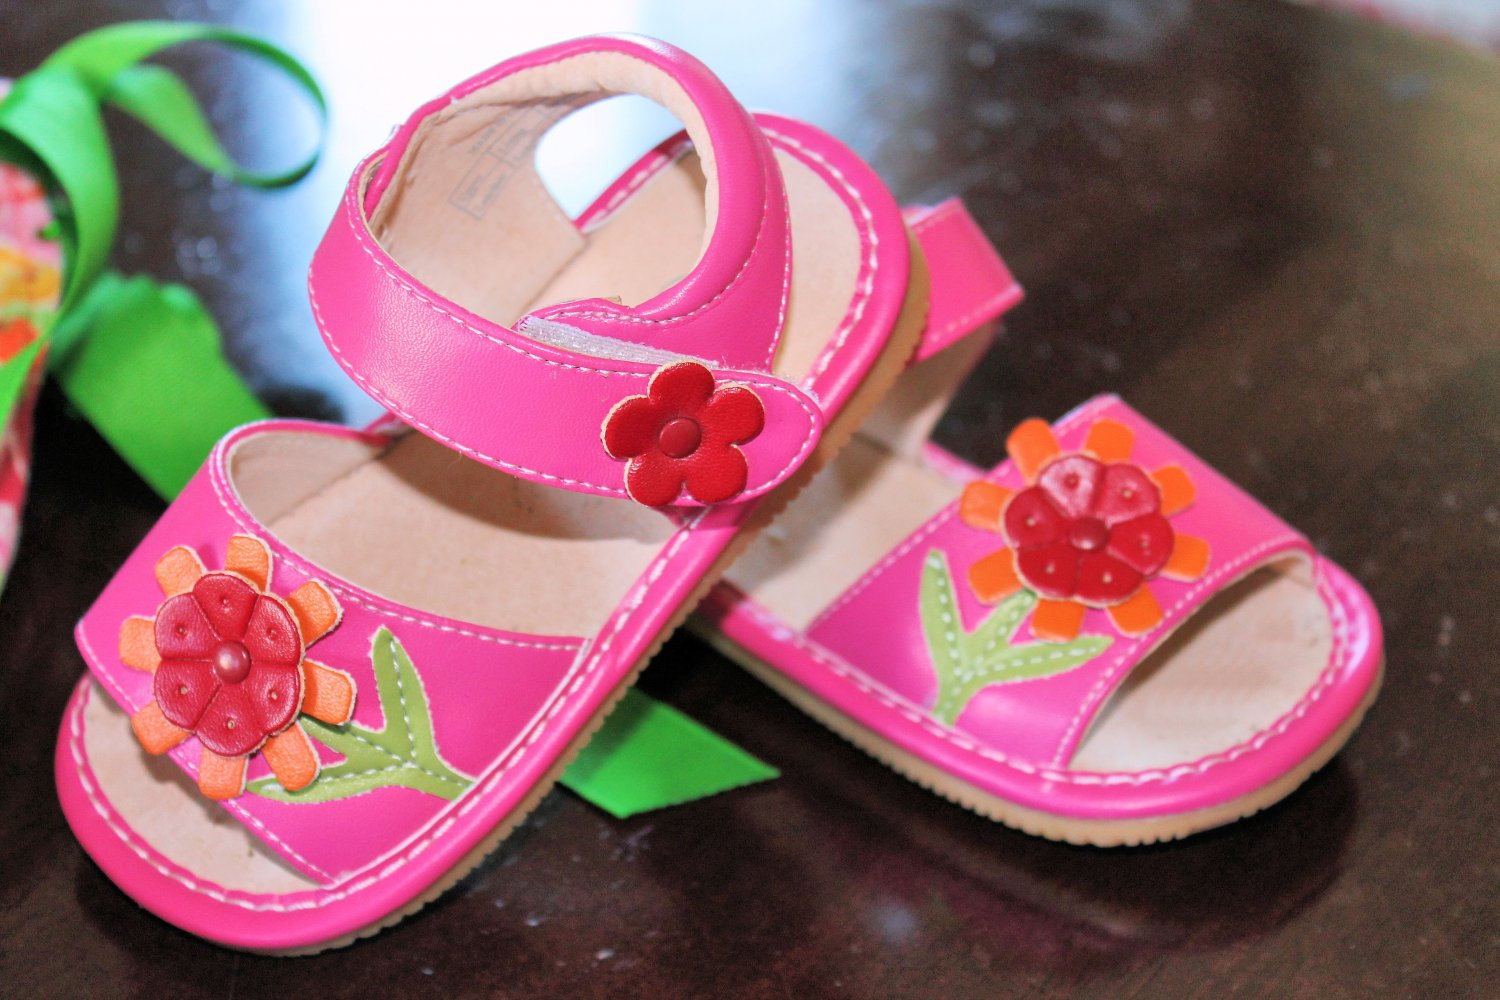 Squeaky Shoes in Hot Pink w/Sunflower